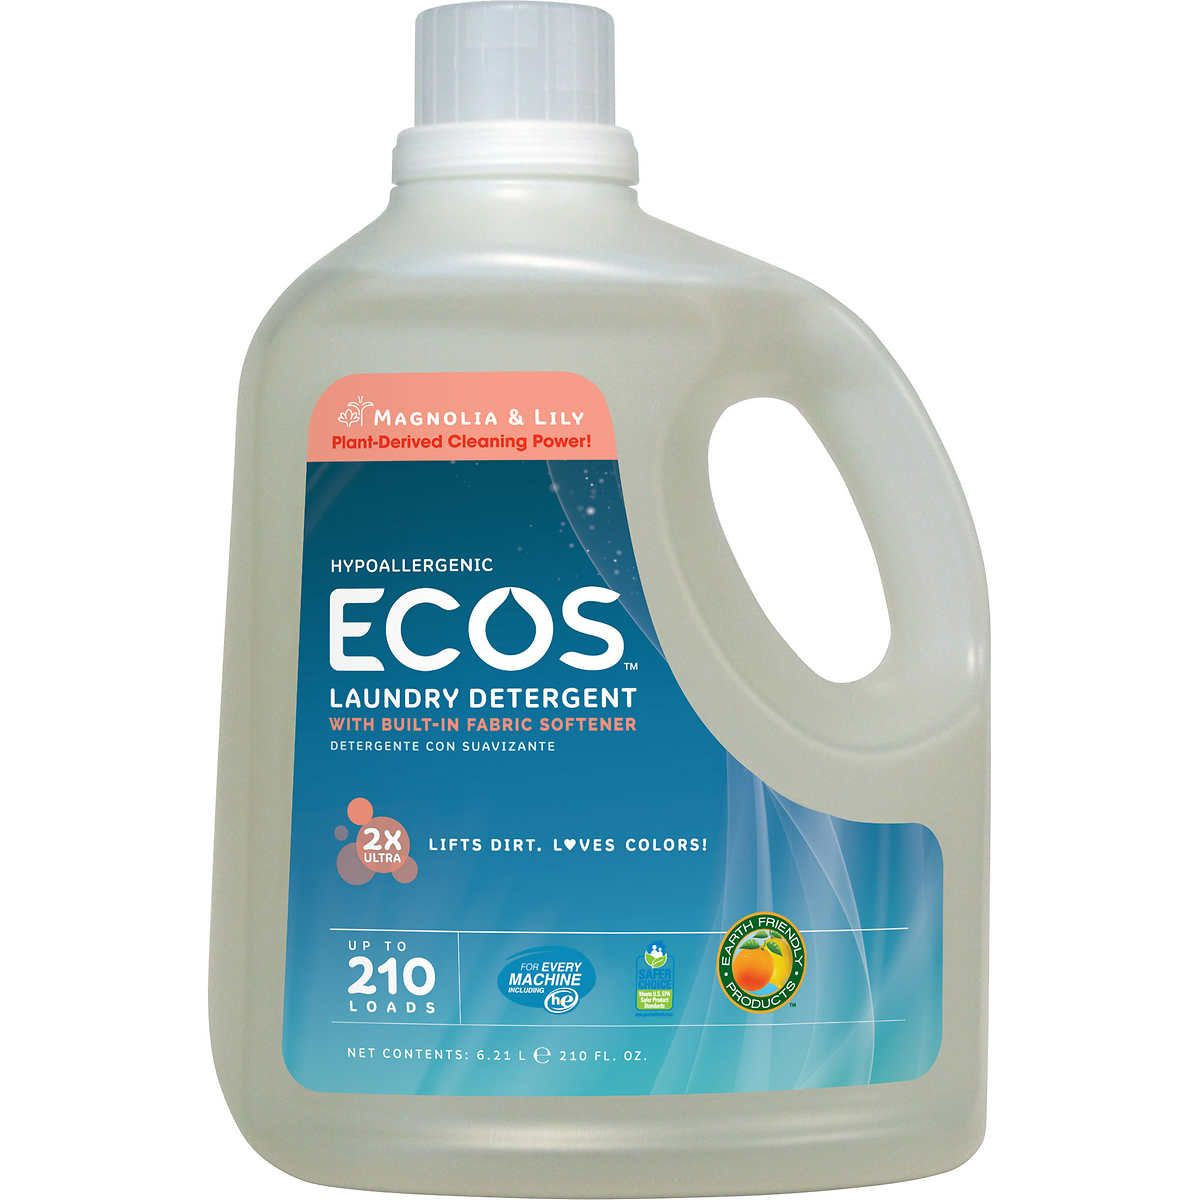 Image Result For Eco Laundry Detergent Ecos Laundry Detergent